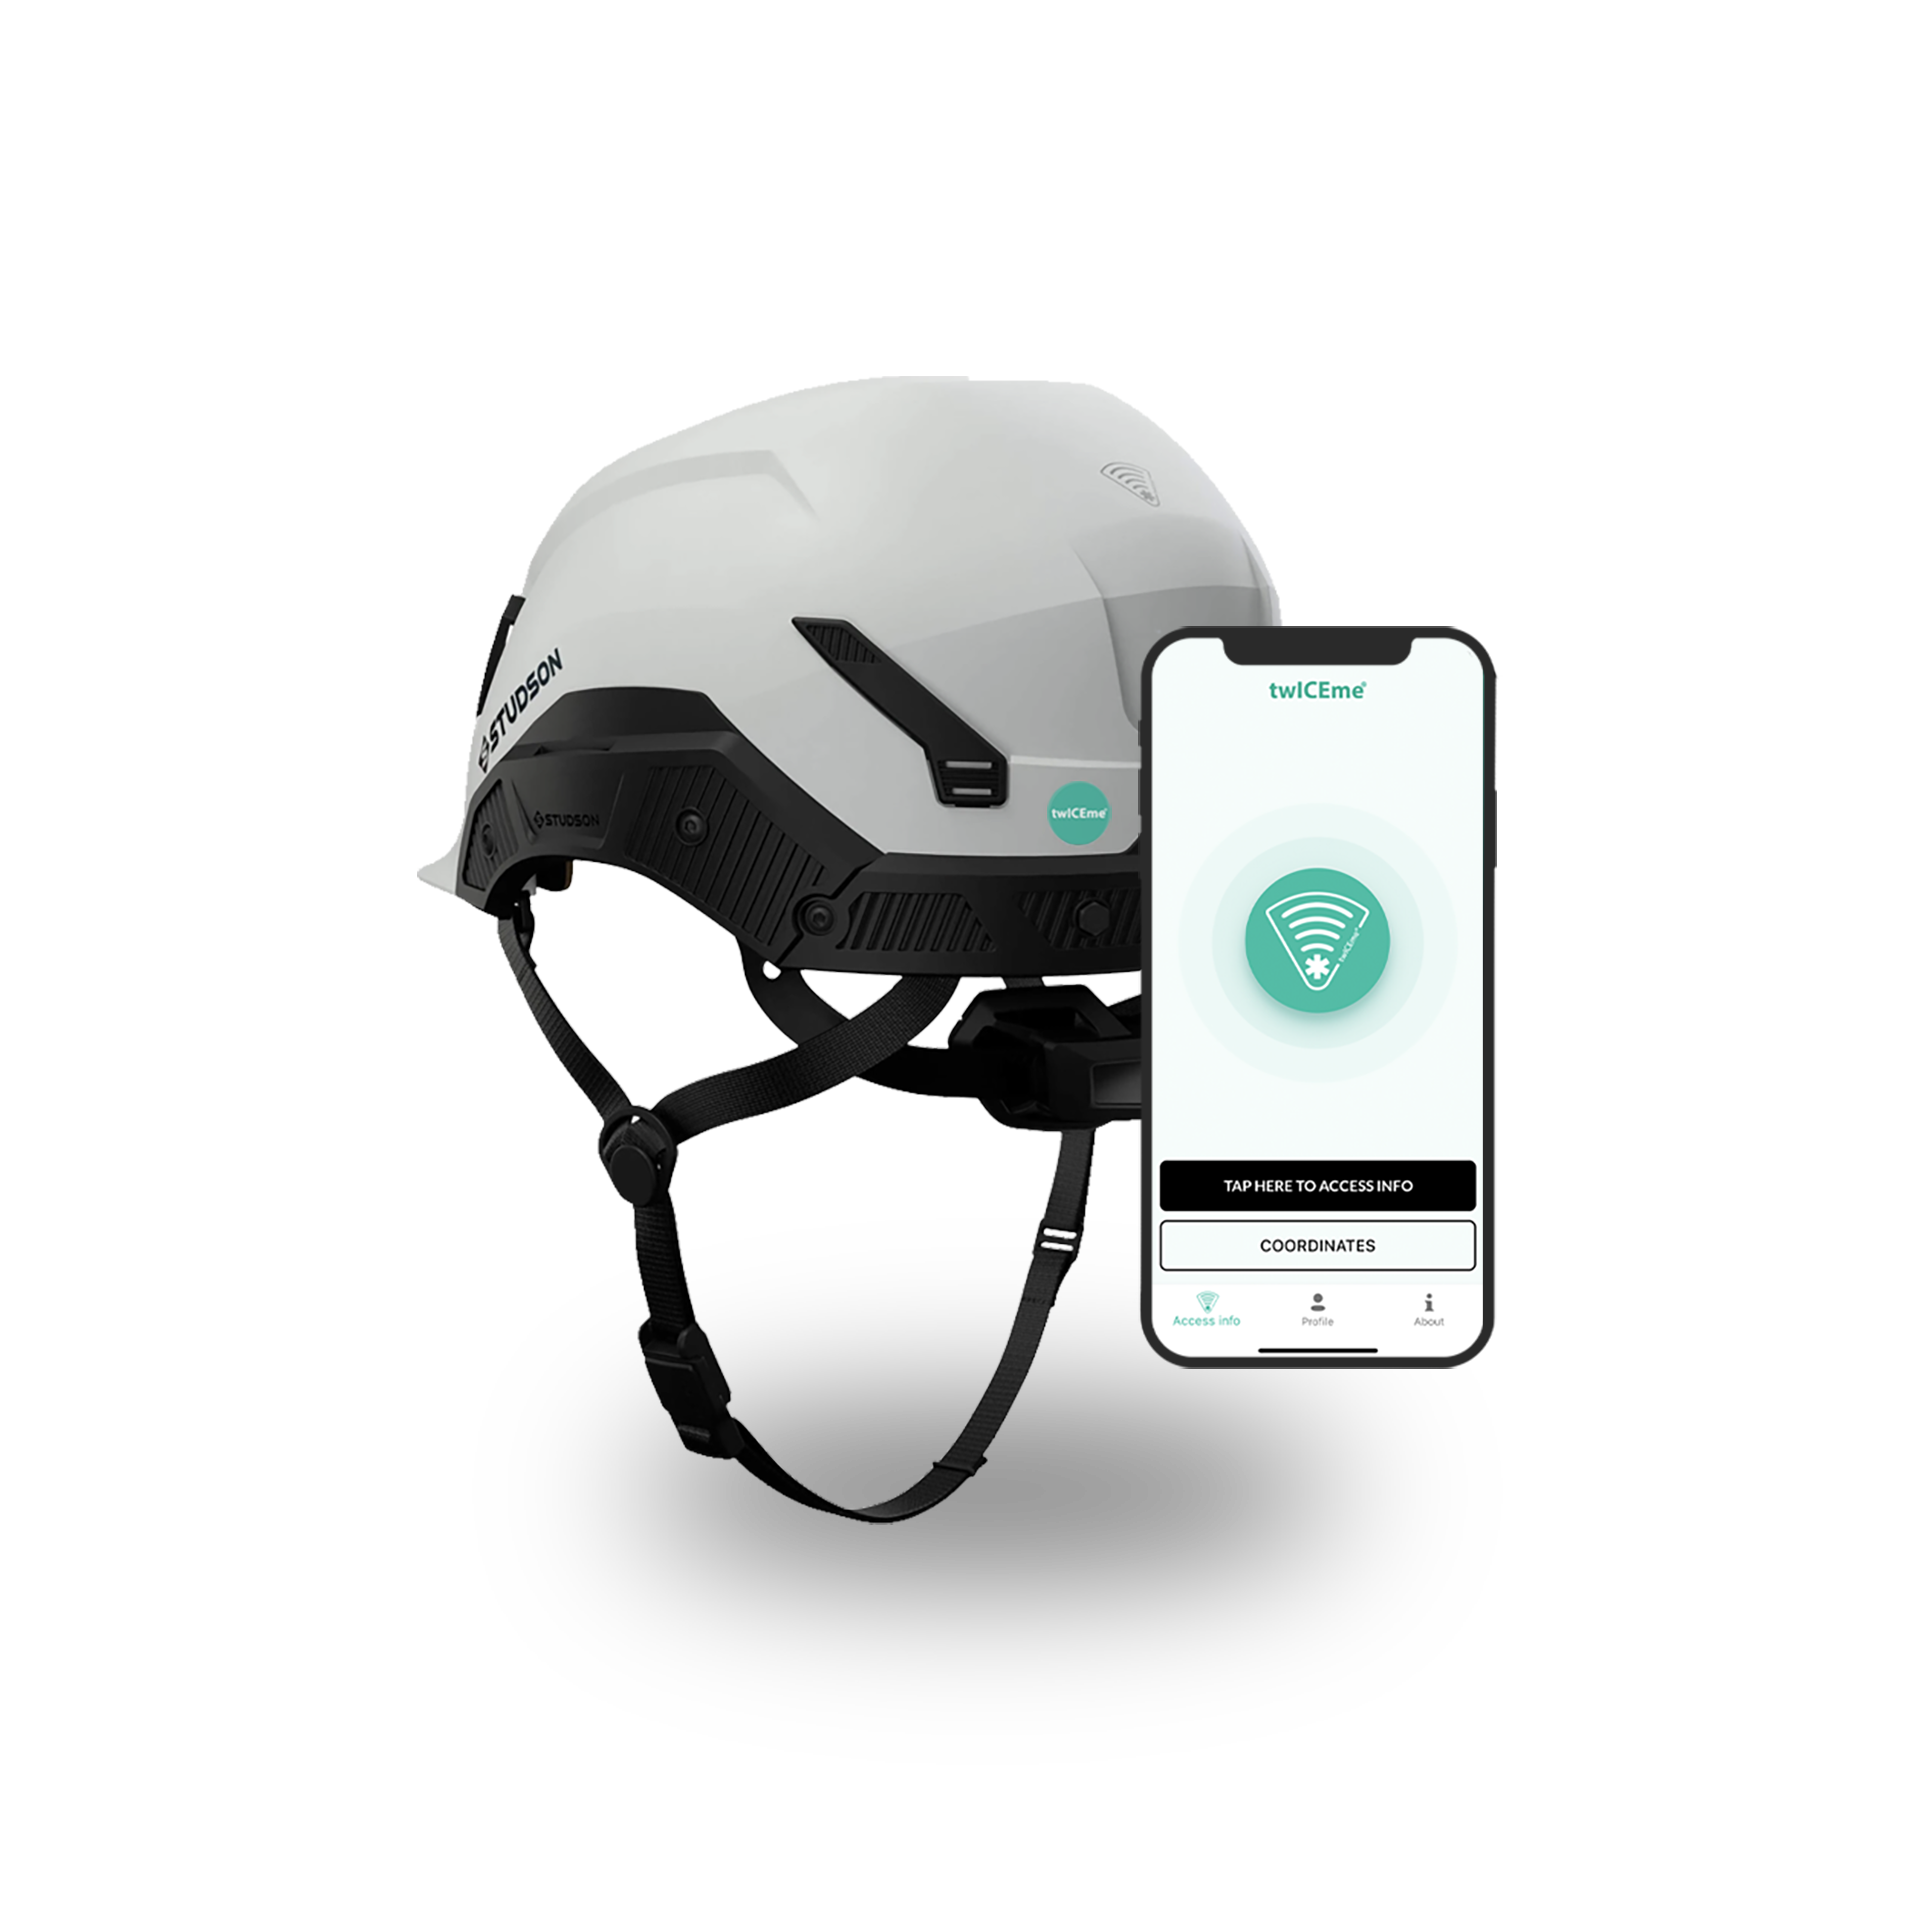 twICEme enhanced equipment can be scanned with any smartphone